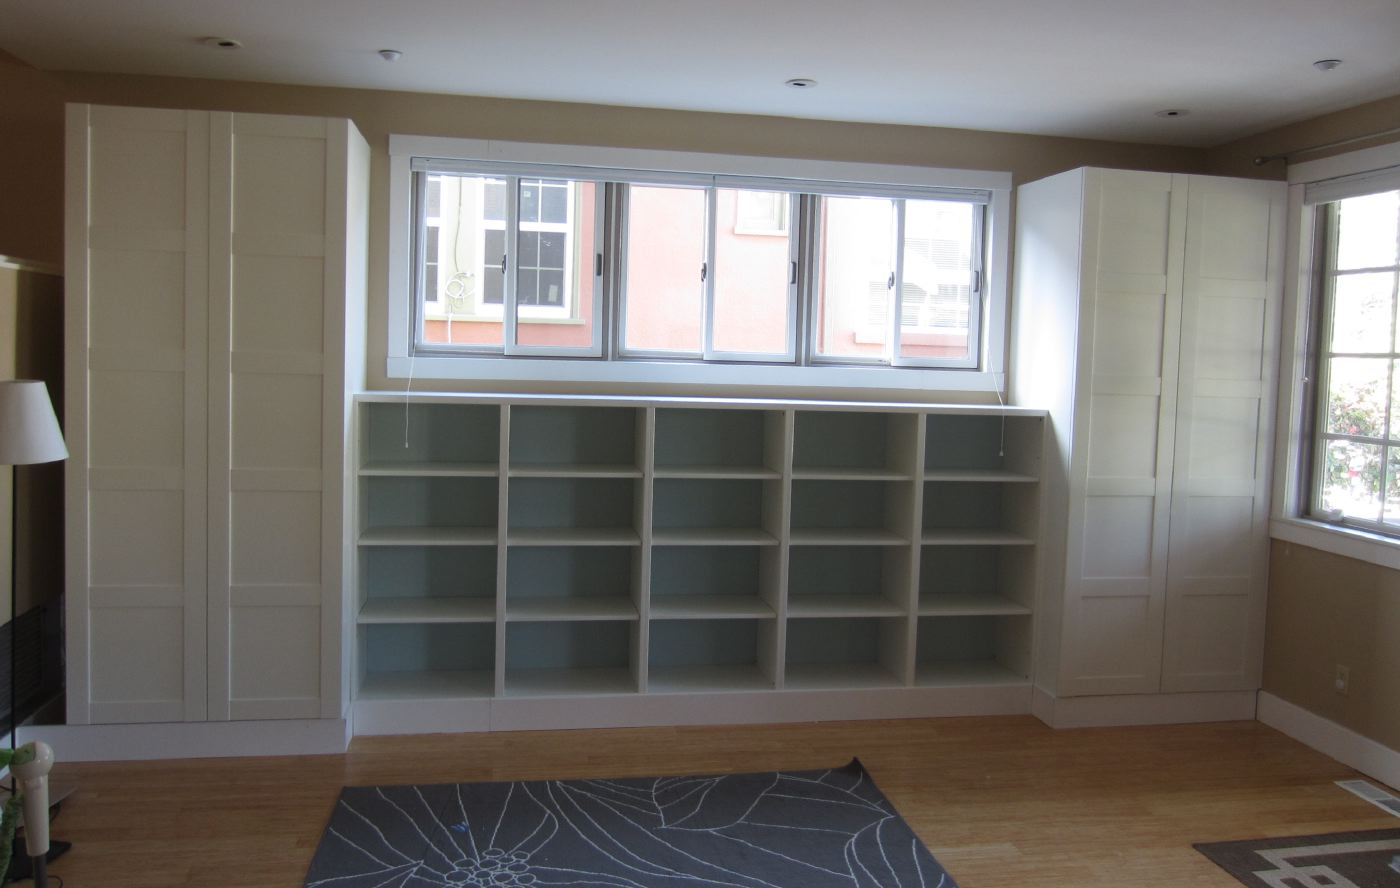 Living room built in bookshelves and closets using besta Built in shelves living room